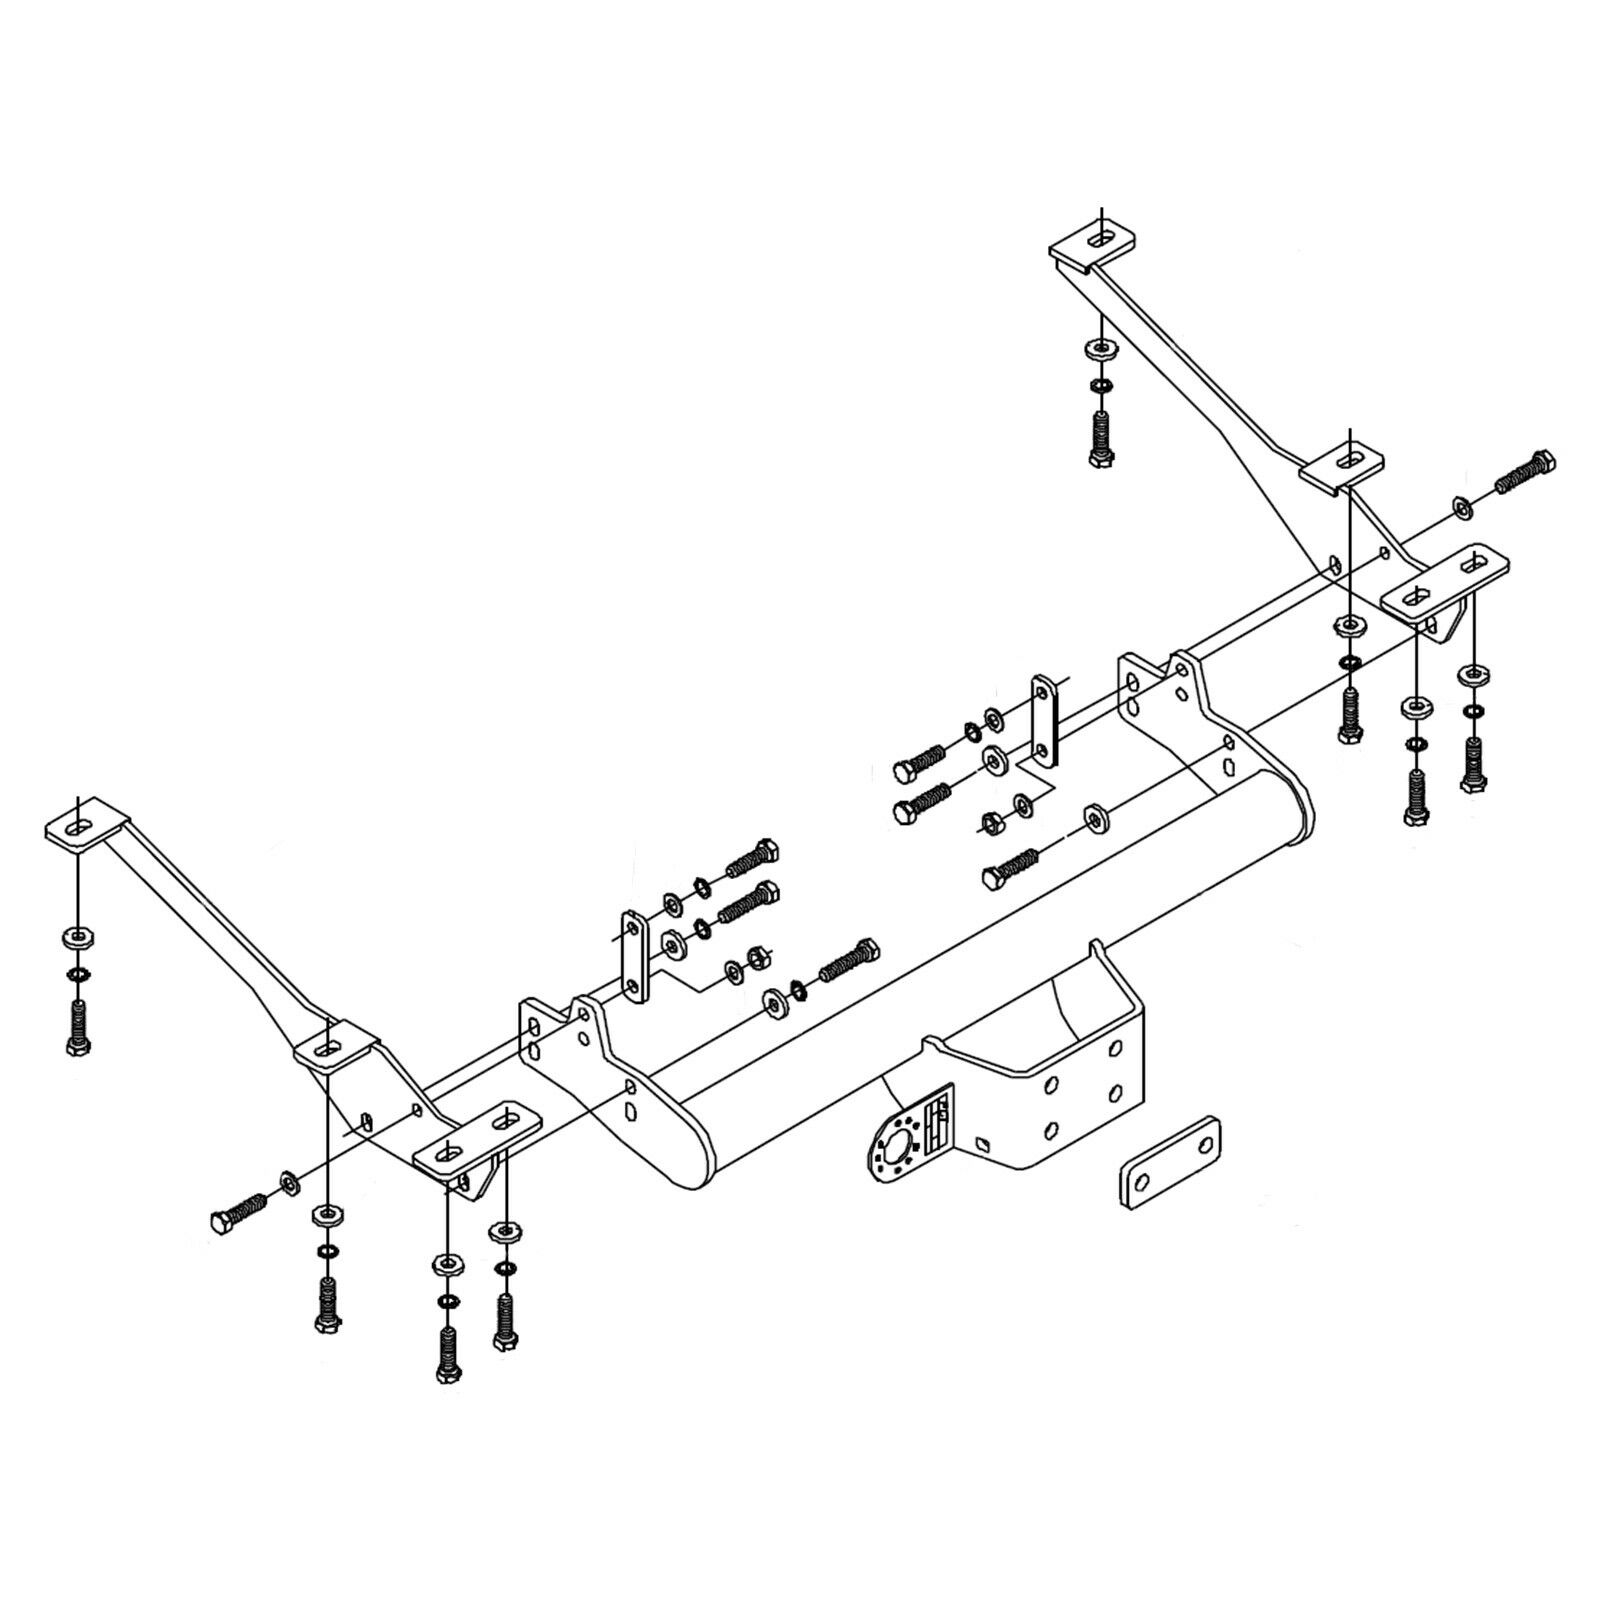 hight resolution of details about towbar for vauxhall movano van rwd 2010 on flange tow bar